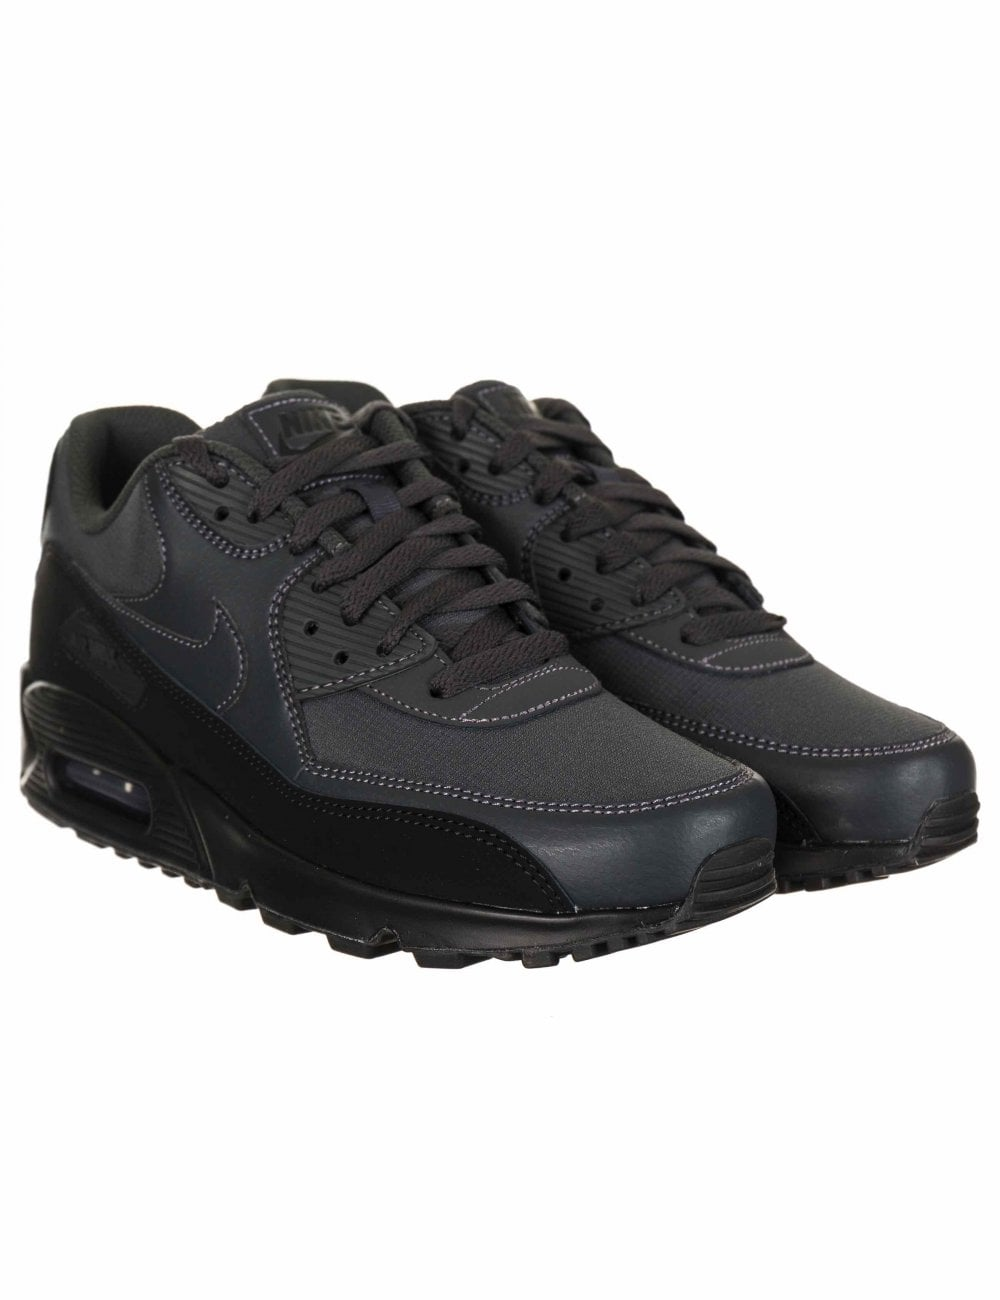 new arrivals ce573 a041a Air Max 90 Essential Trainers - Black Anthracite